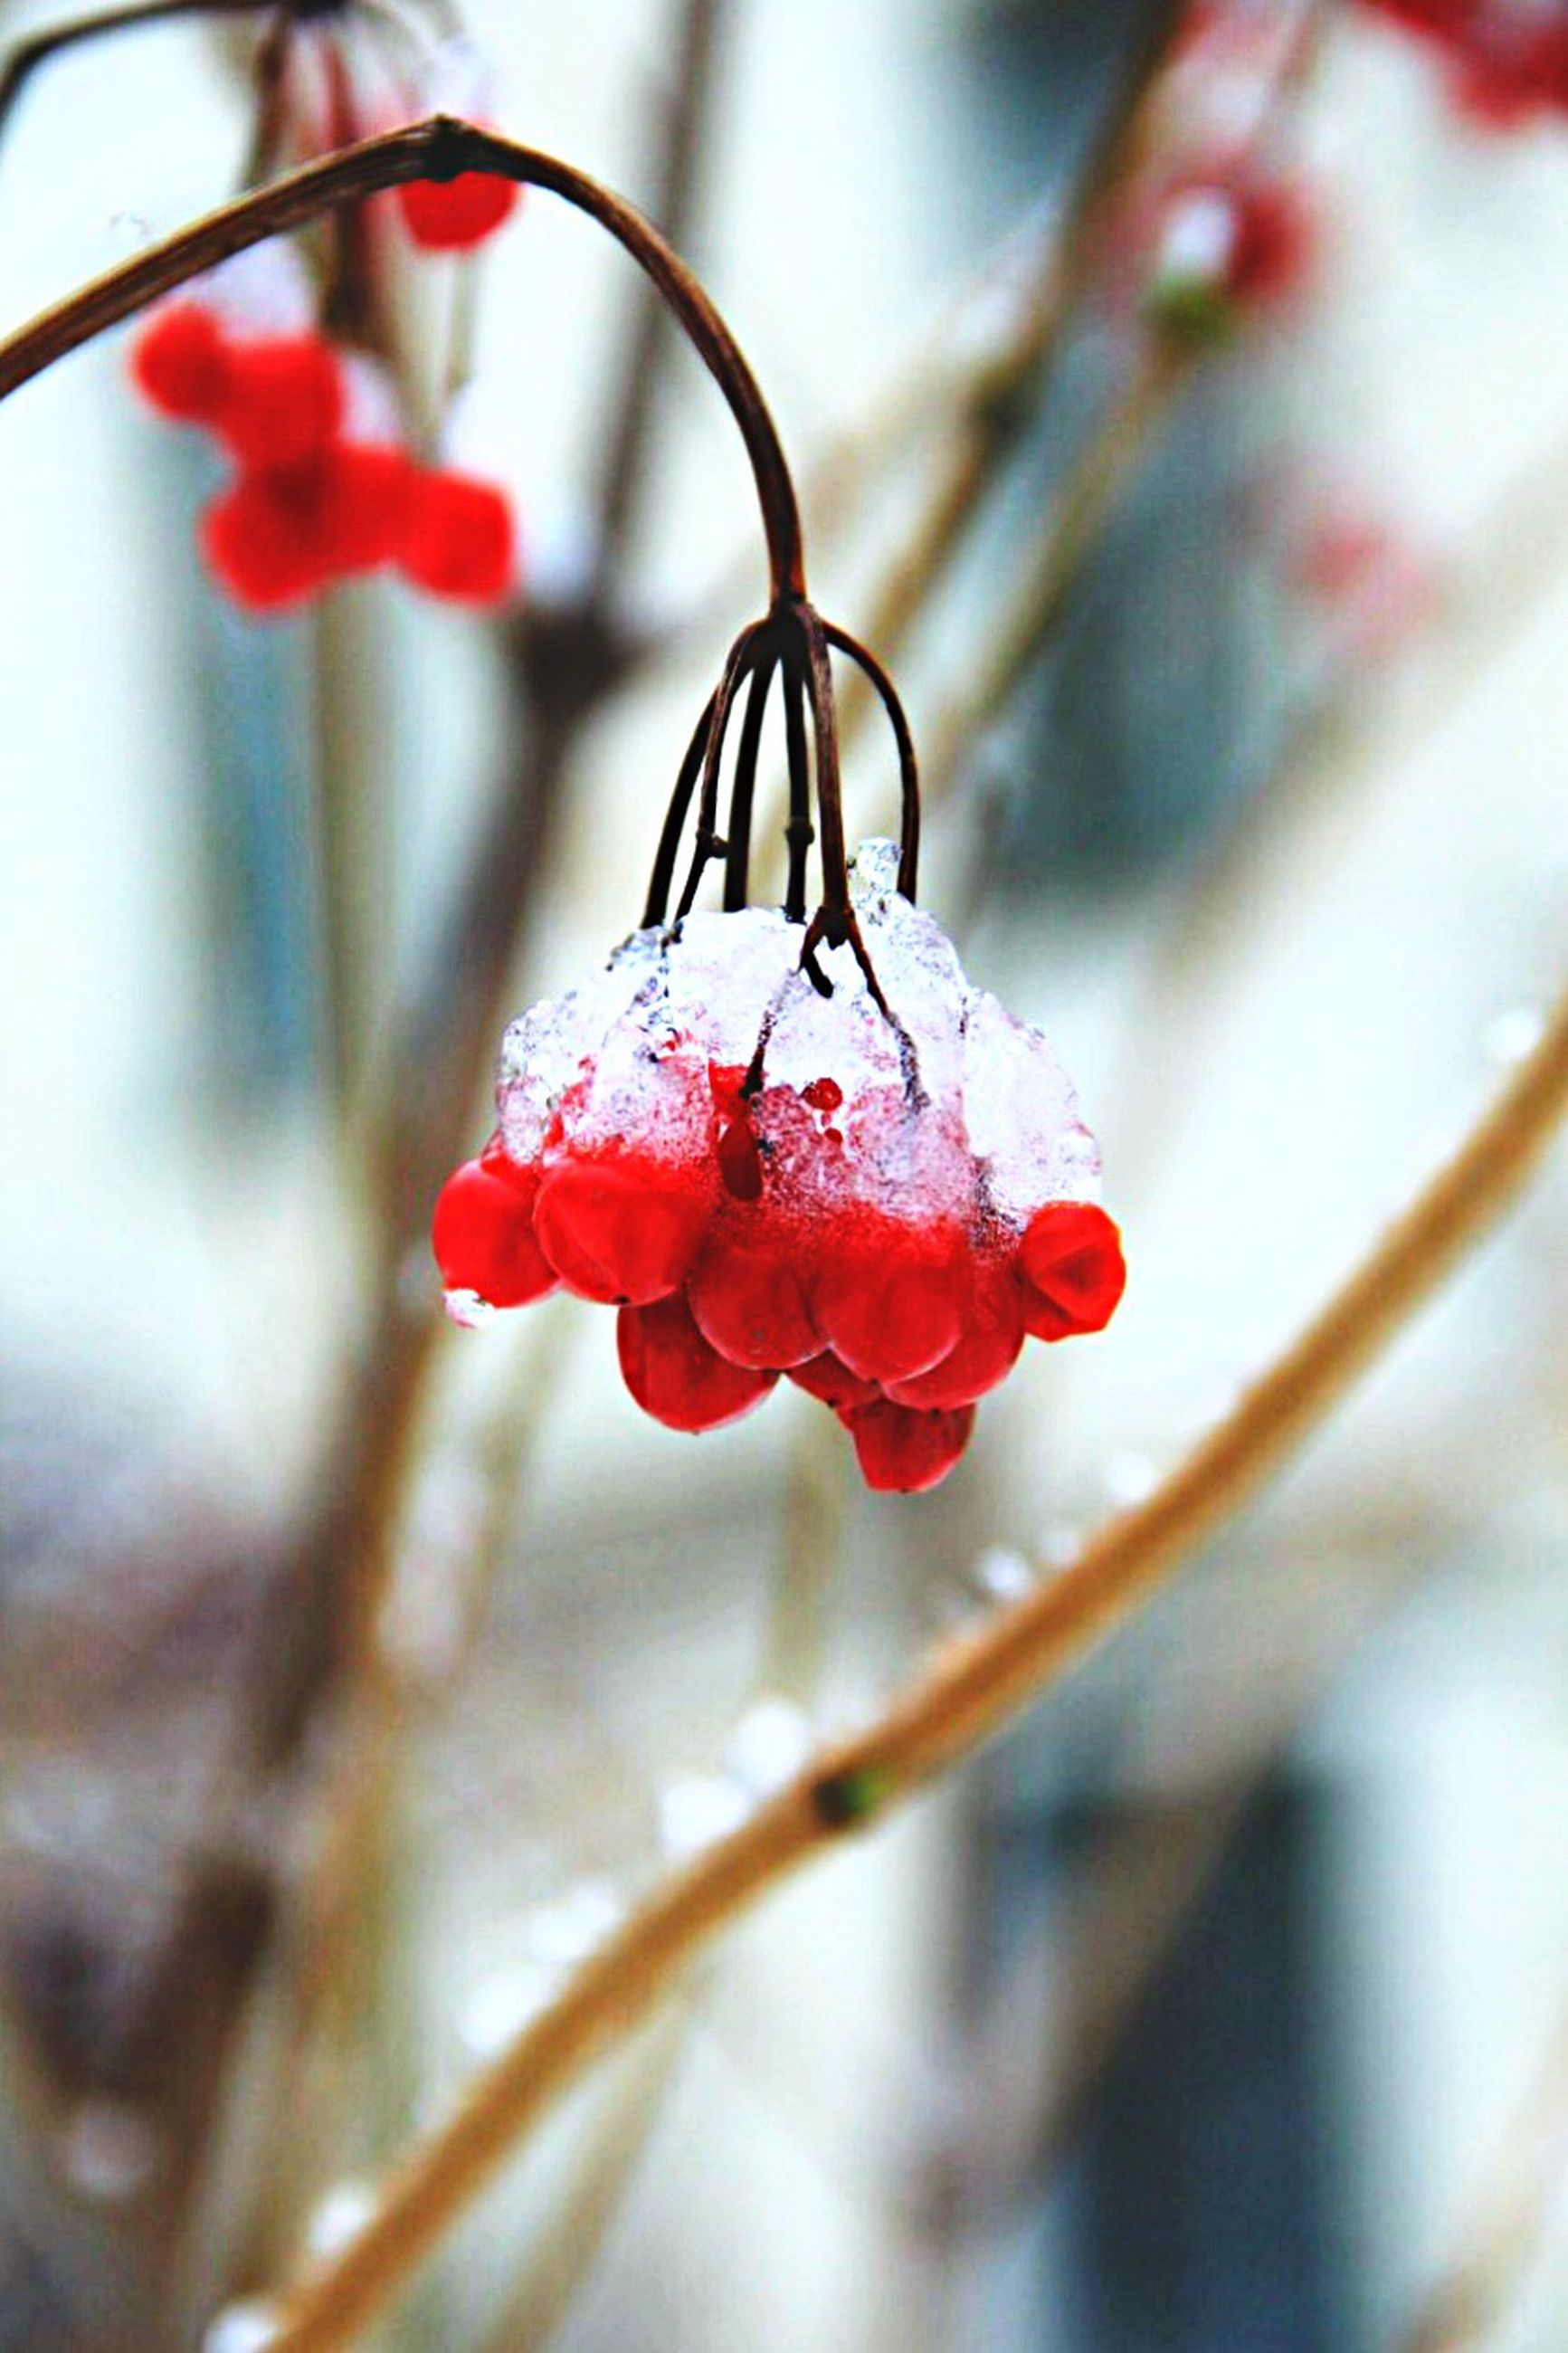 red, focus on foreground, close-up, freshness, growth, flower, nature, fragility, selective focus, twig, season, stem, beauty in nature, plant, frozen, branch, cold temperature, berry fruit, winter, fruit